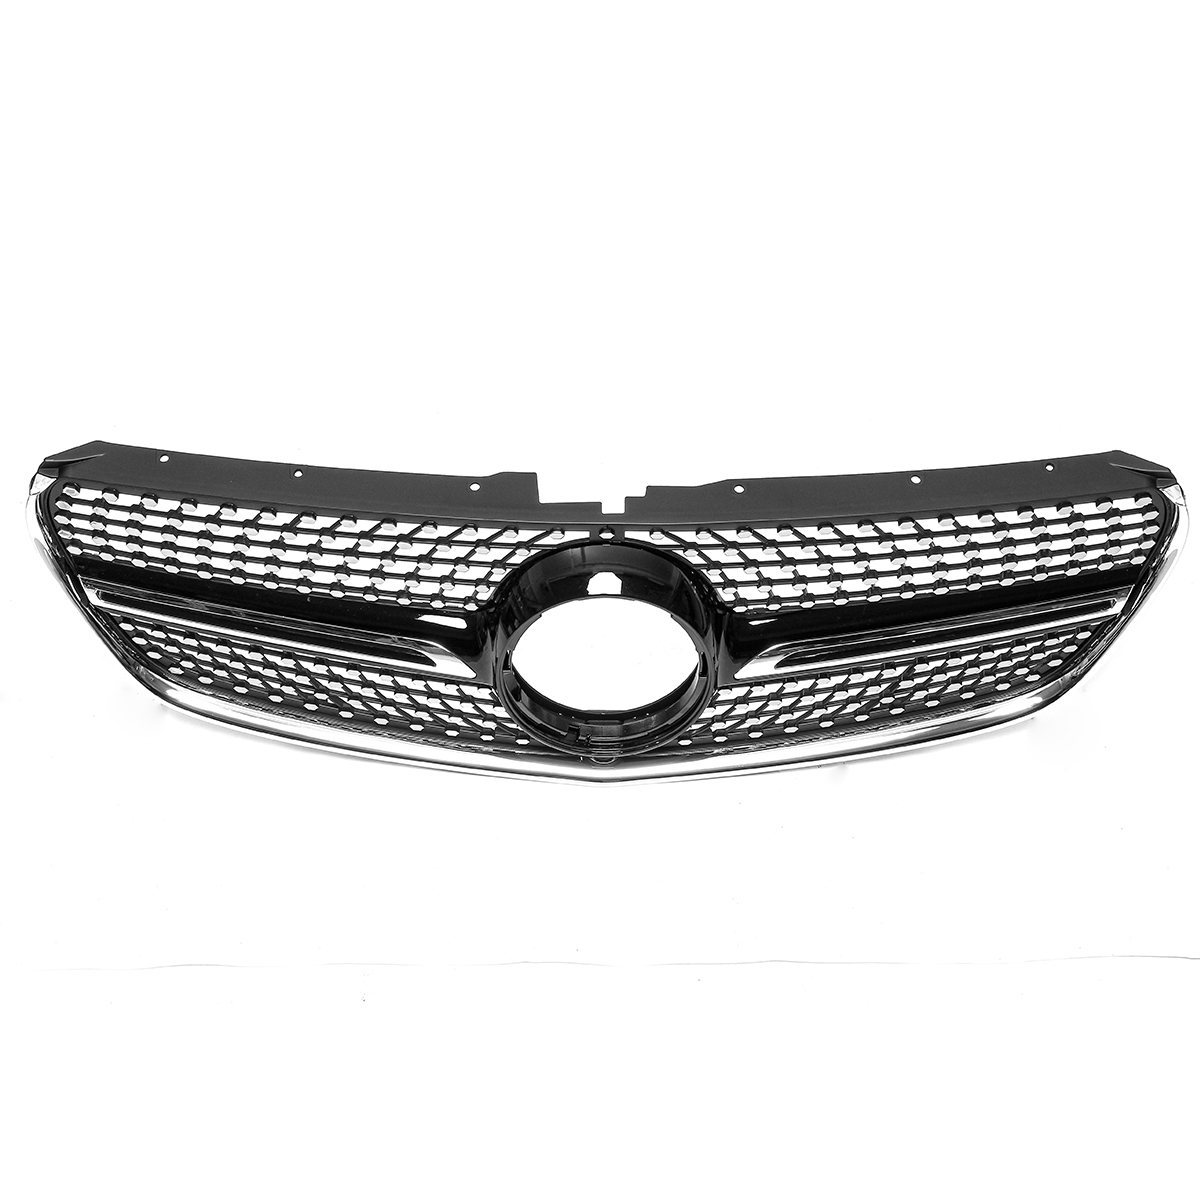 Front Black Racing Diamond Grill Bumper Grille Cover For Mercedes W447 V250 V260 15-18